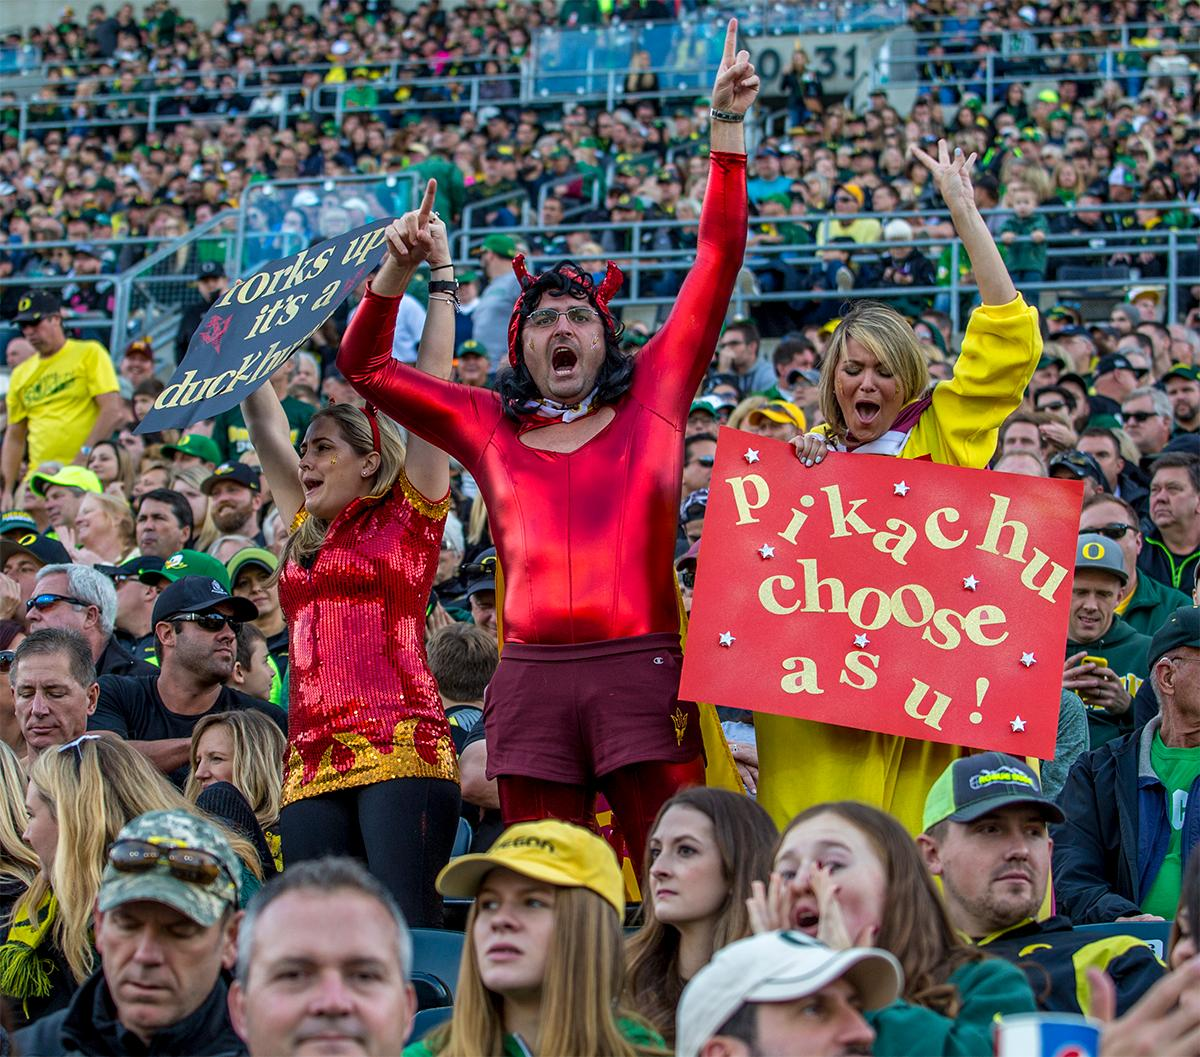 Fans decked out and ready for Halloween yell encouragement to the Ducks team. Oregon lead at the end of the 1st half 30-14. Photos by August Frank, Oregon News Lab